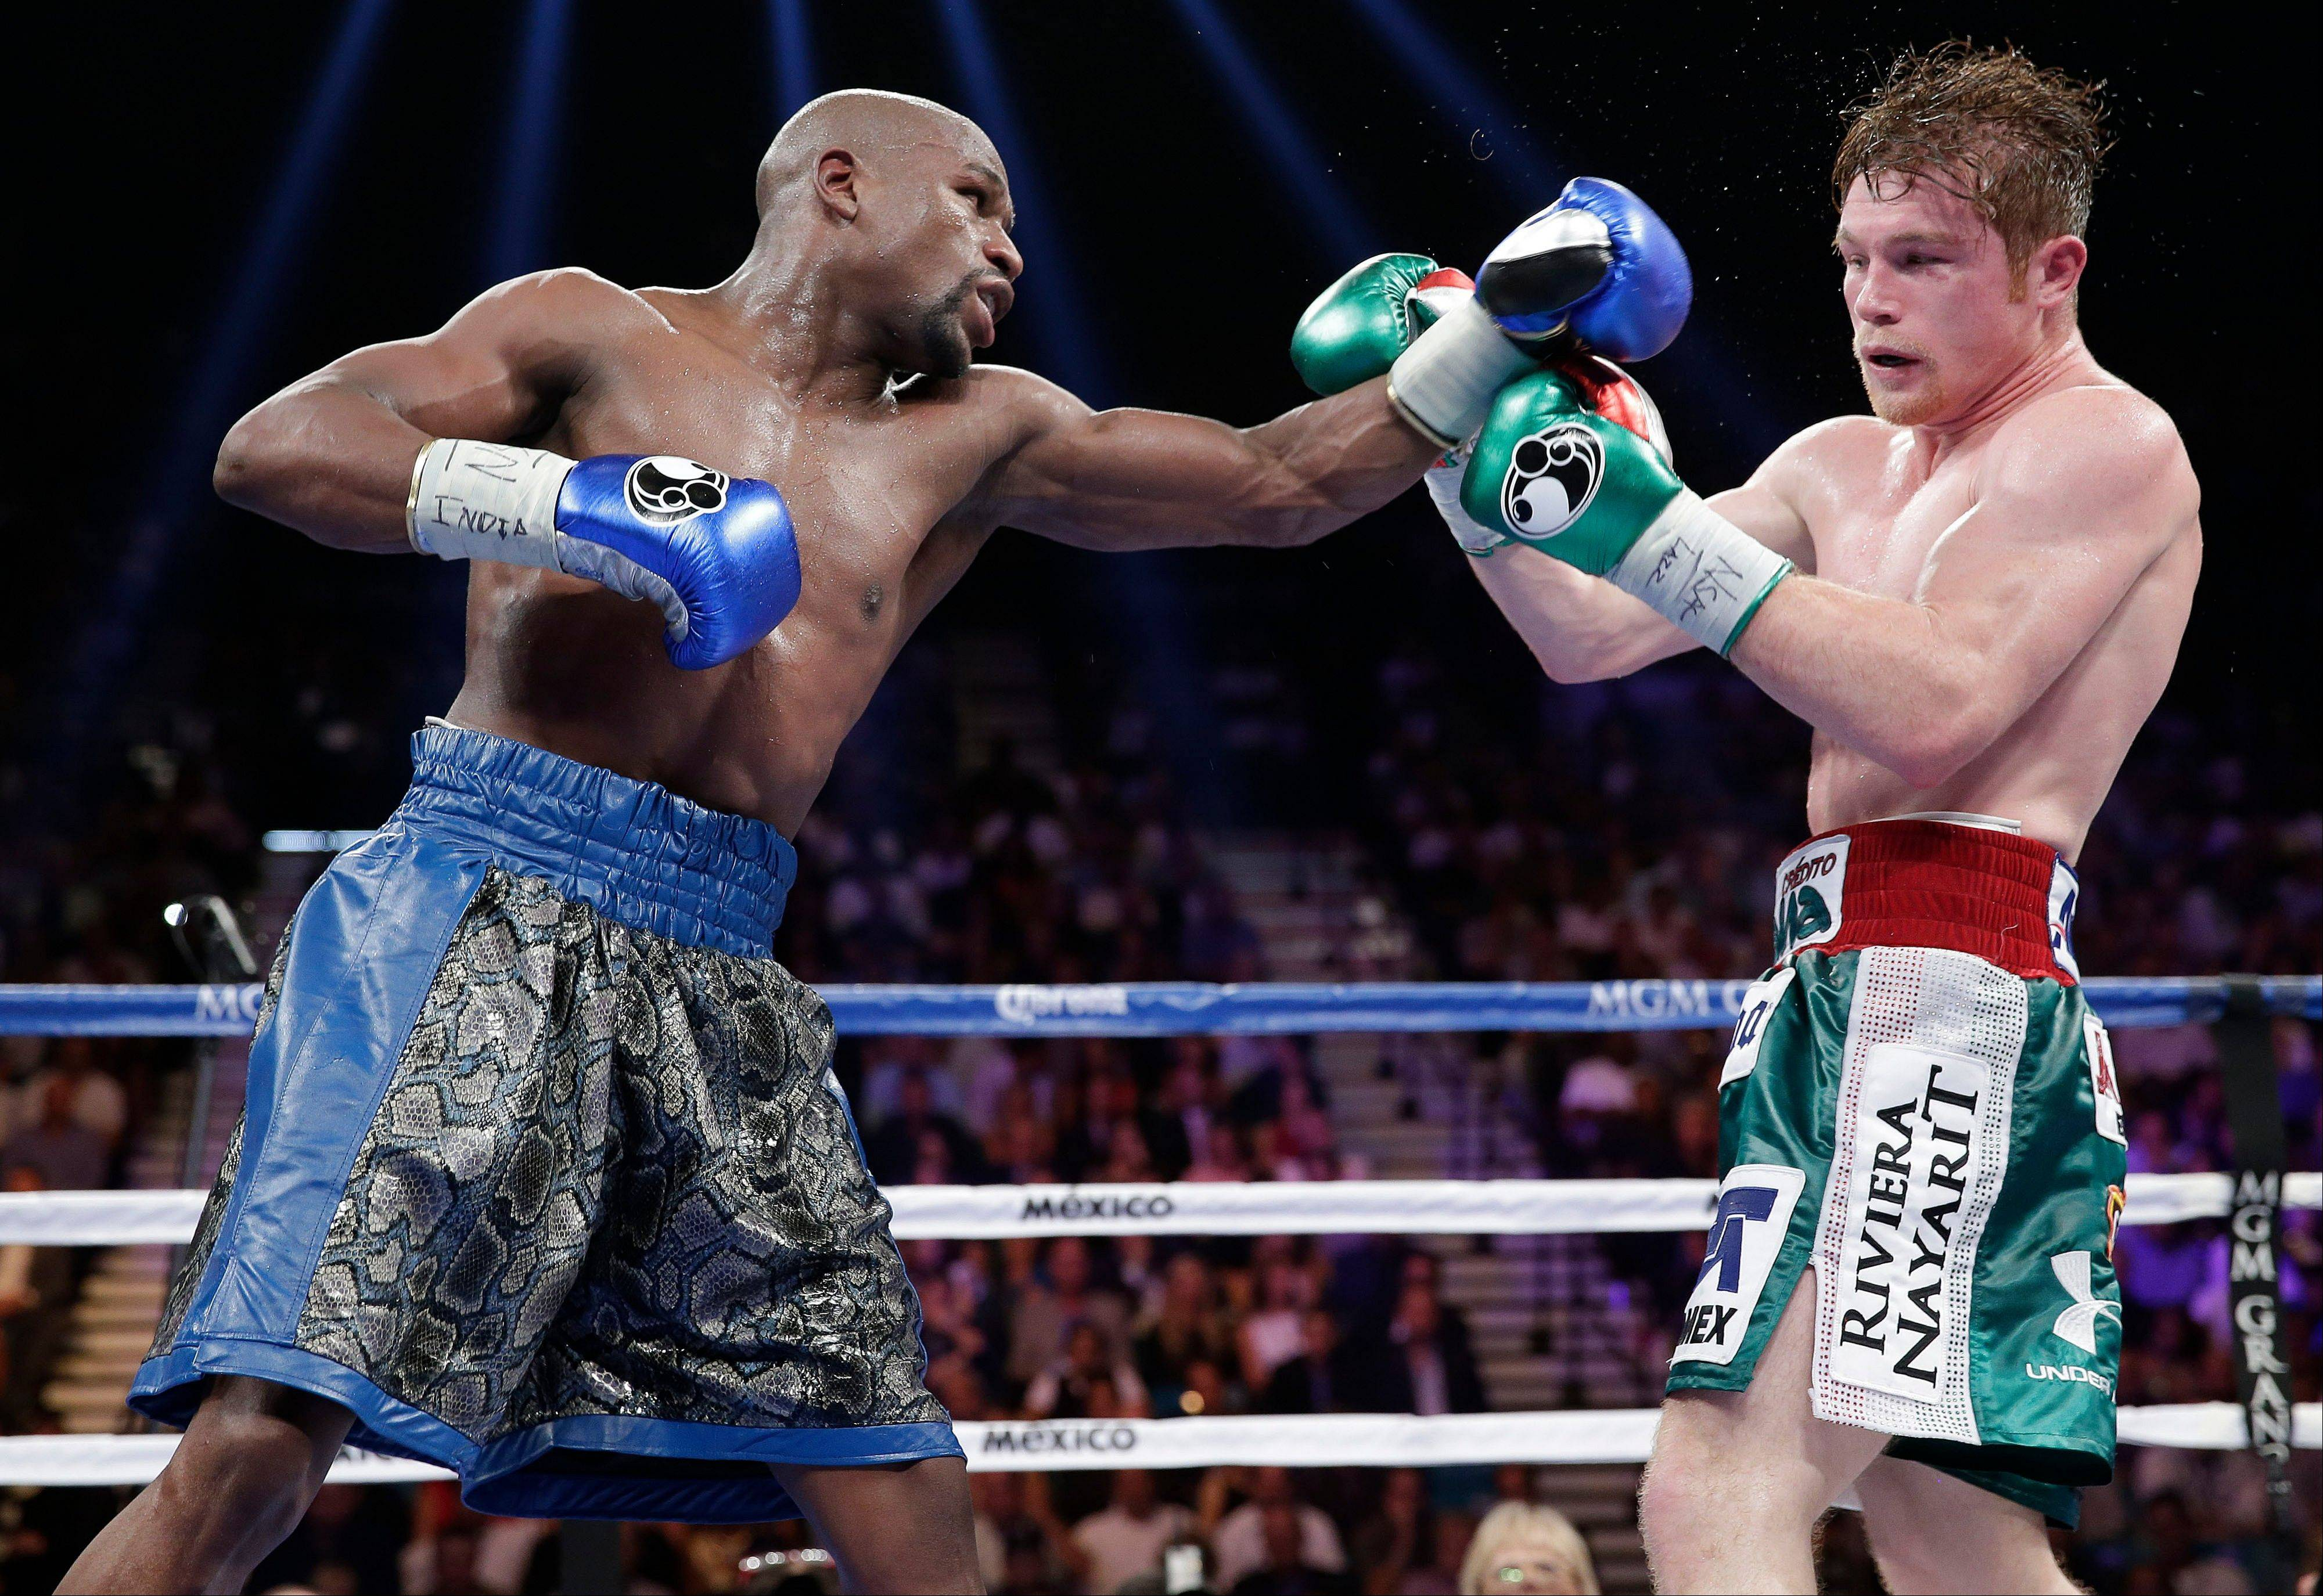 Floyd Mayweather Jr., left, throws a jab against Canelo Alvarez in the 11th round during a 152-pound title fight, Saturday, Sept. 14, 2013, in Las Vegas.